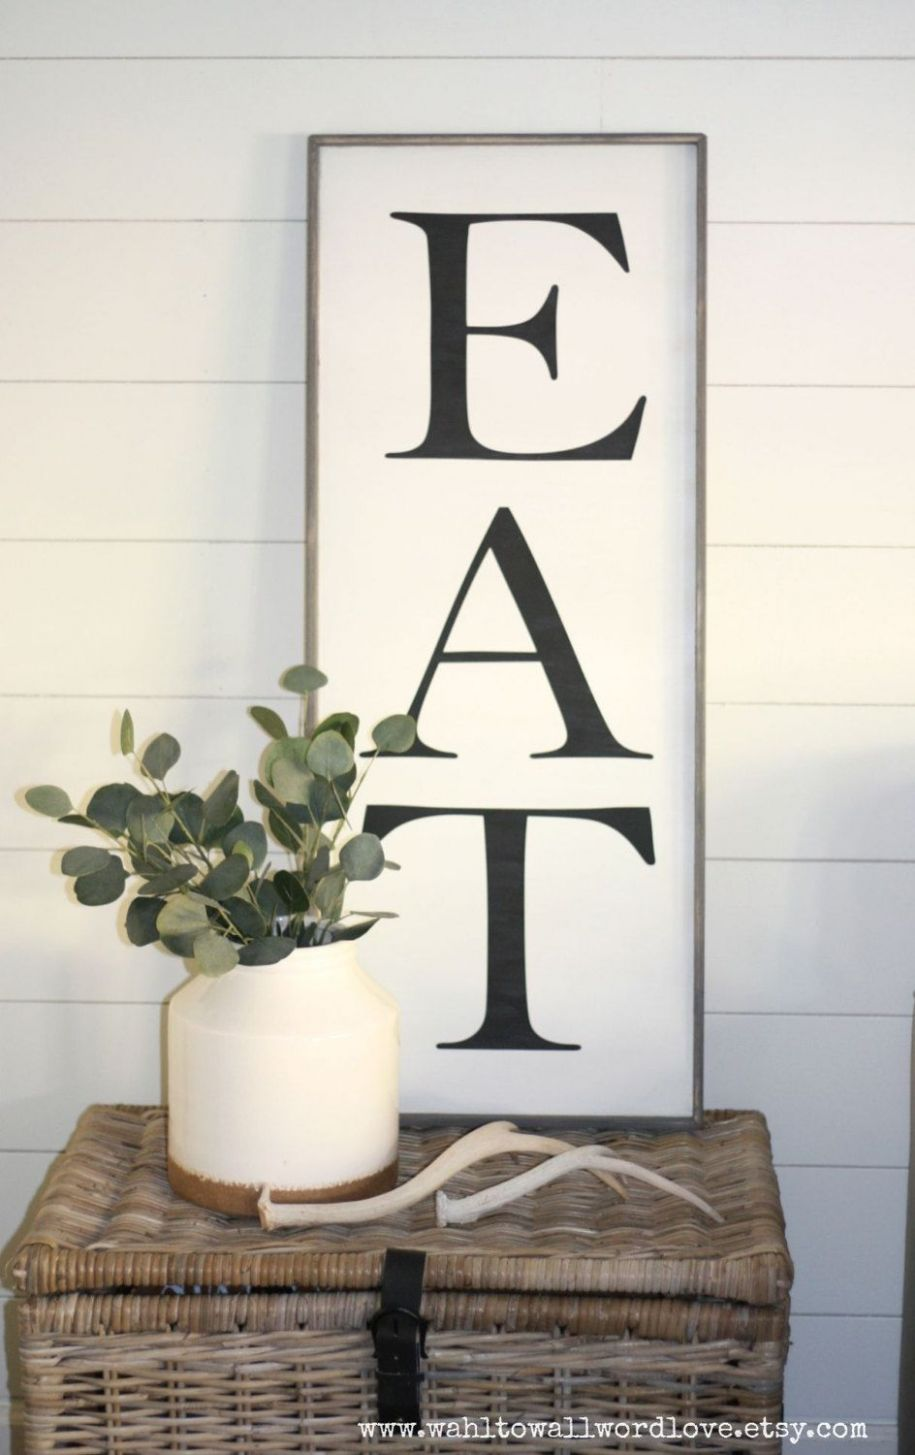 eat sign, large EAT sign, kitchen wall decor, kitchen eat sign ..